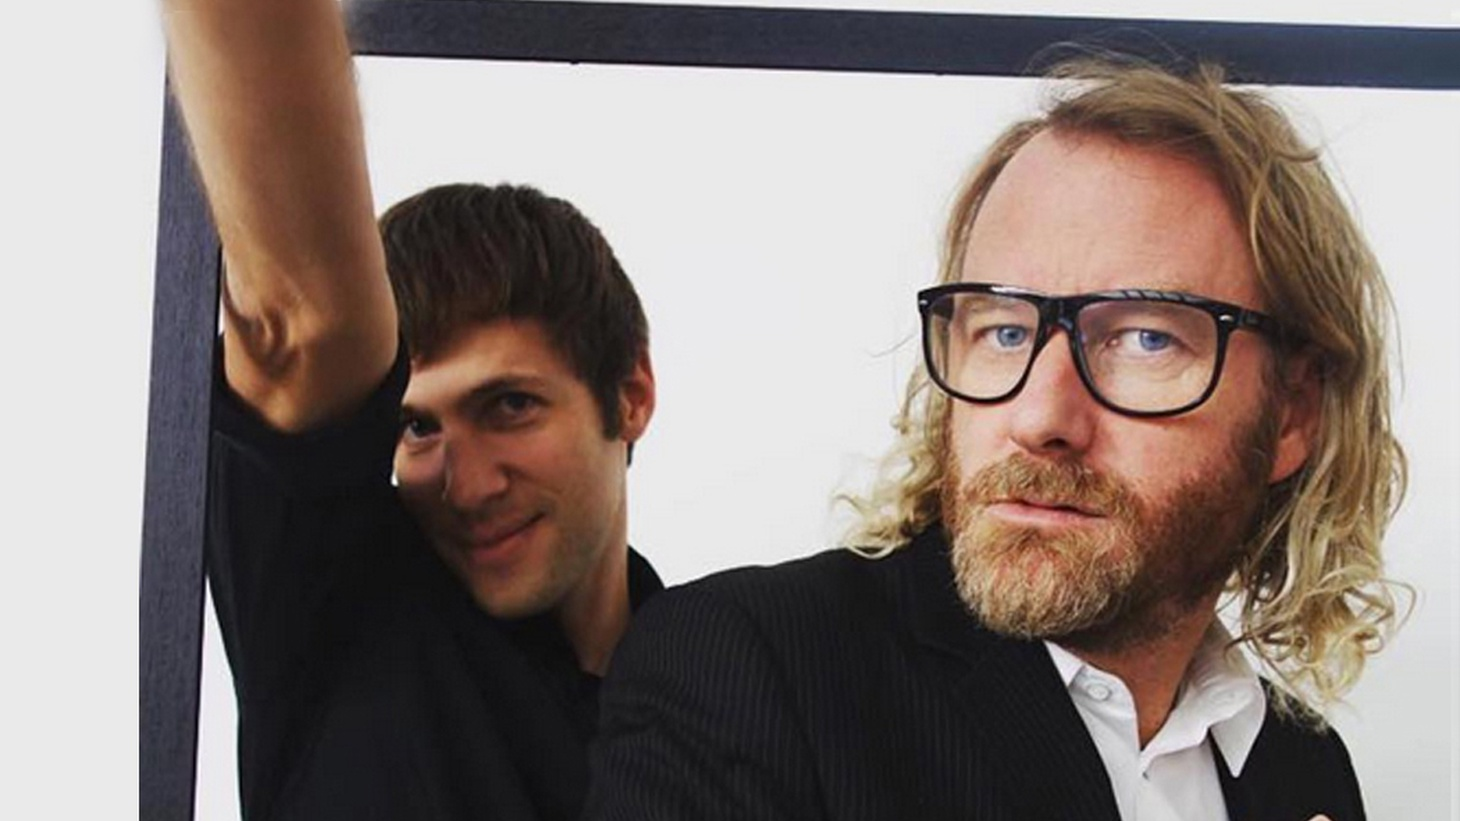 EL VY is a new project from The National front-man Matt Berninger and Brent Knopf (Ramona Falls/ Menomena). The collaboration has been in the works for over a decade, and allows the baritone singer to reveal a new side of himself with more autobiographical songwriting.